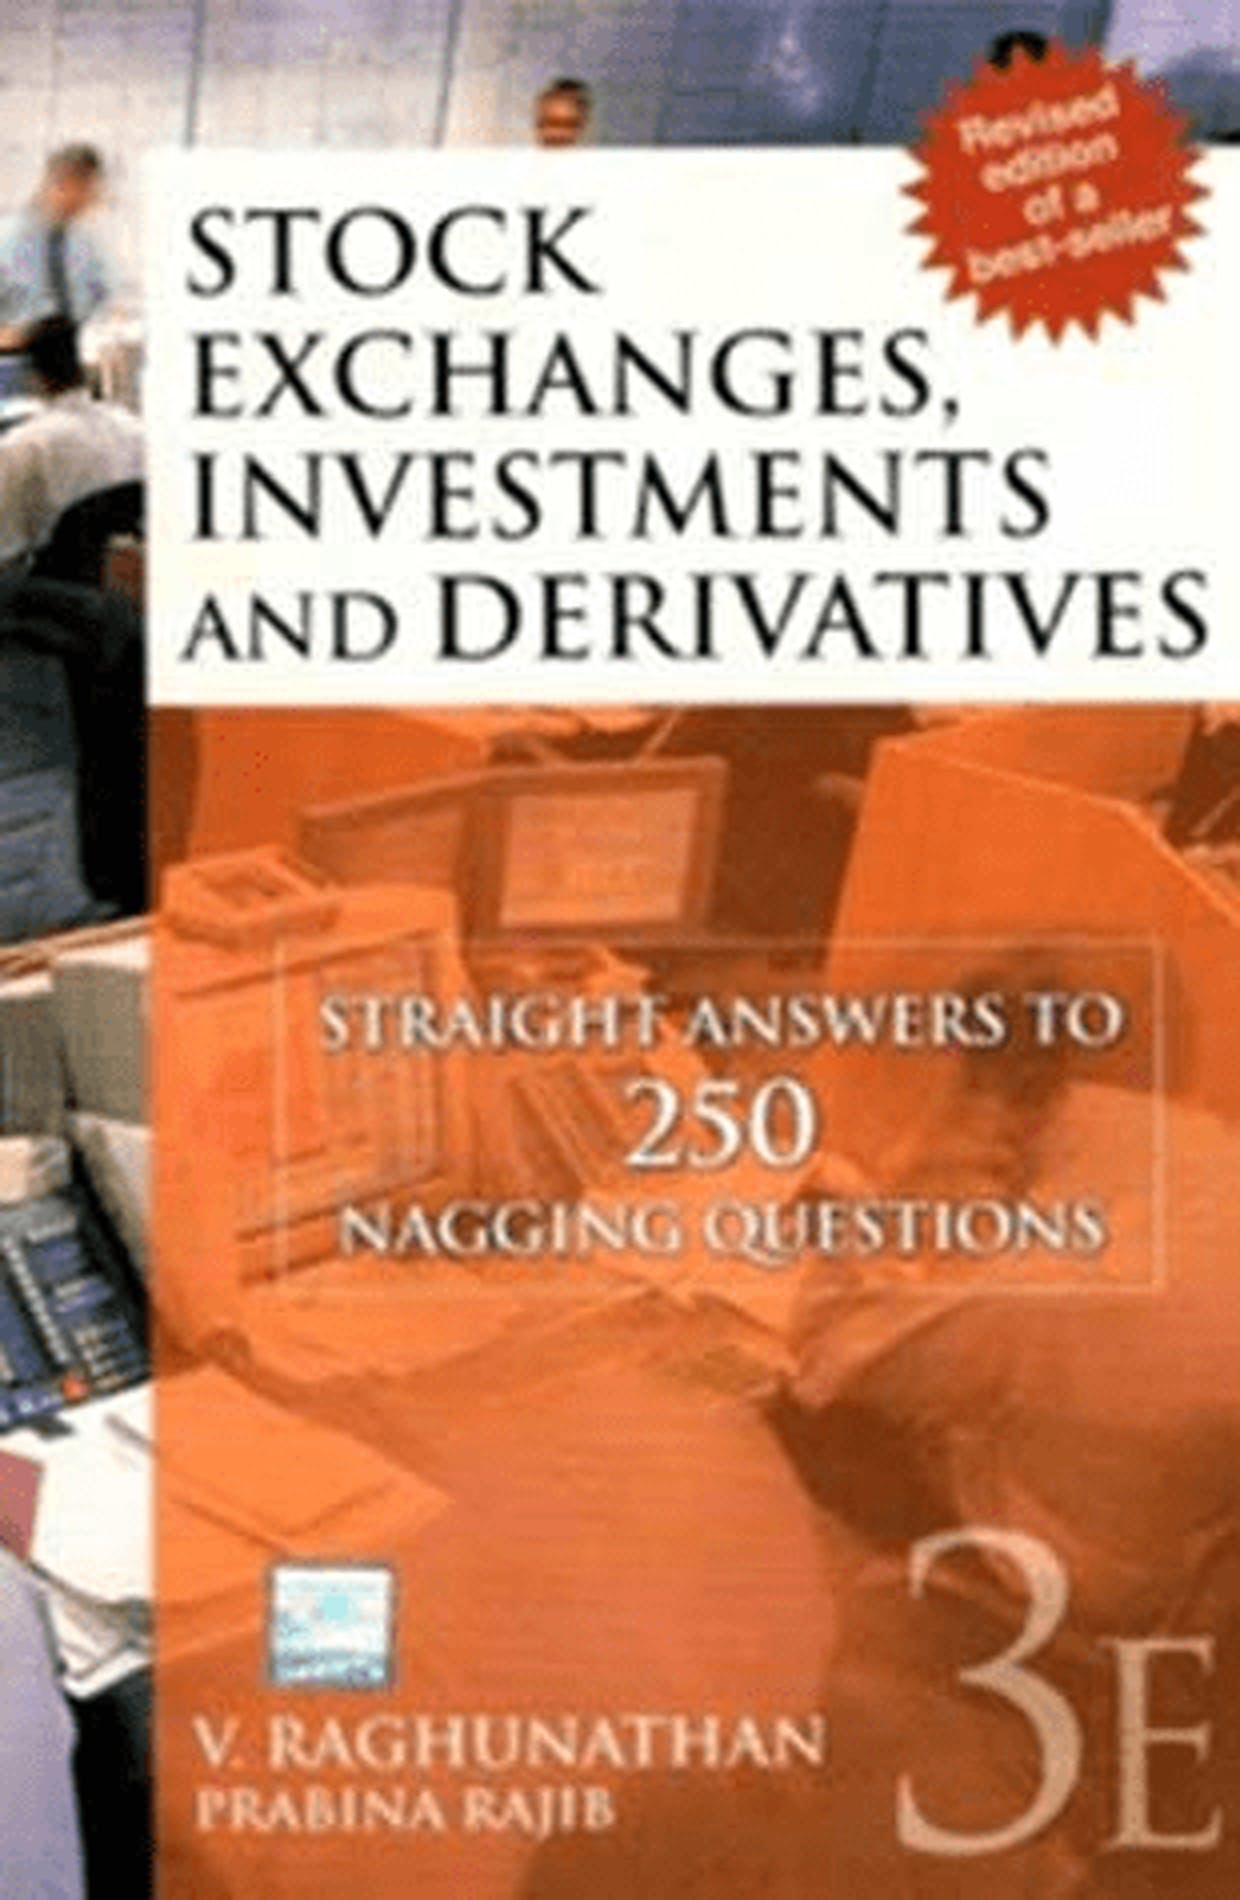 Stock Exchanges, Investments And Derivatives